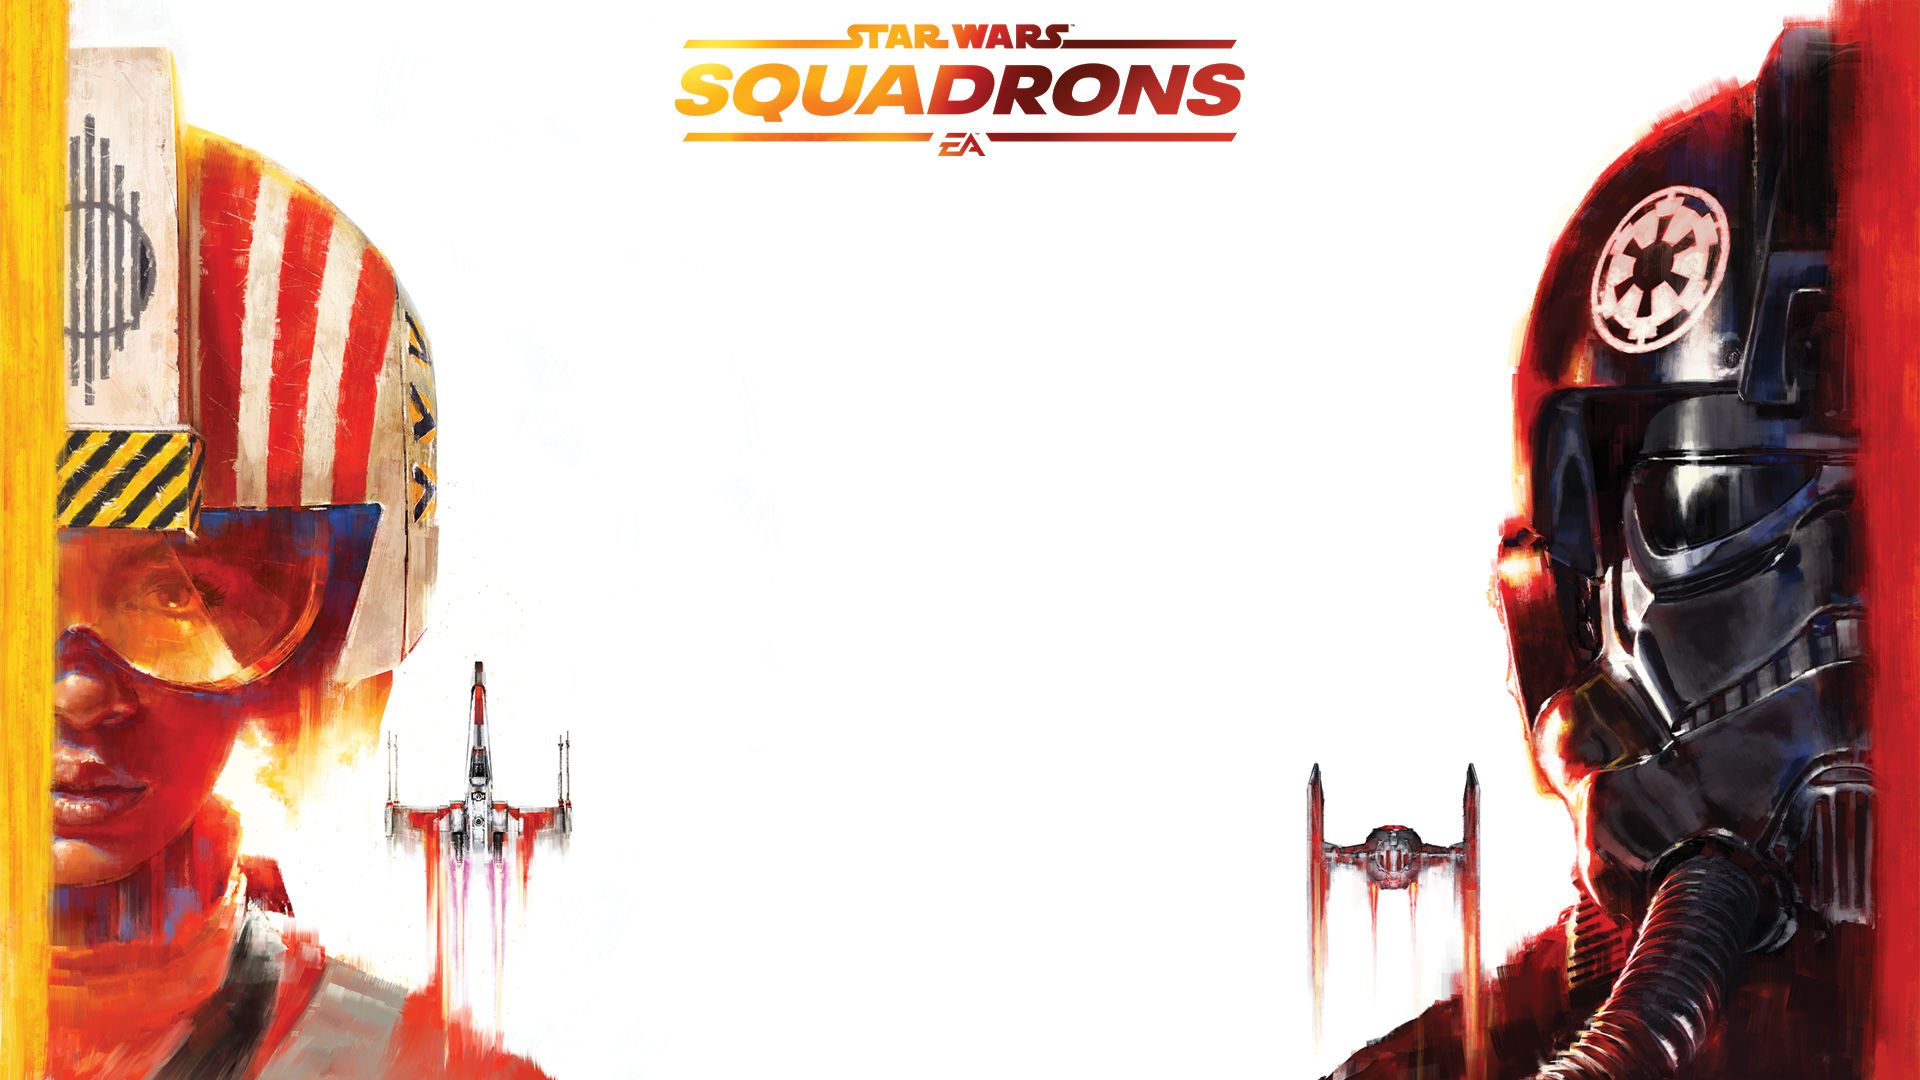 GAMEHOUSE Star Wars: Squadrons